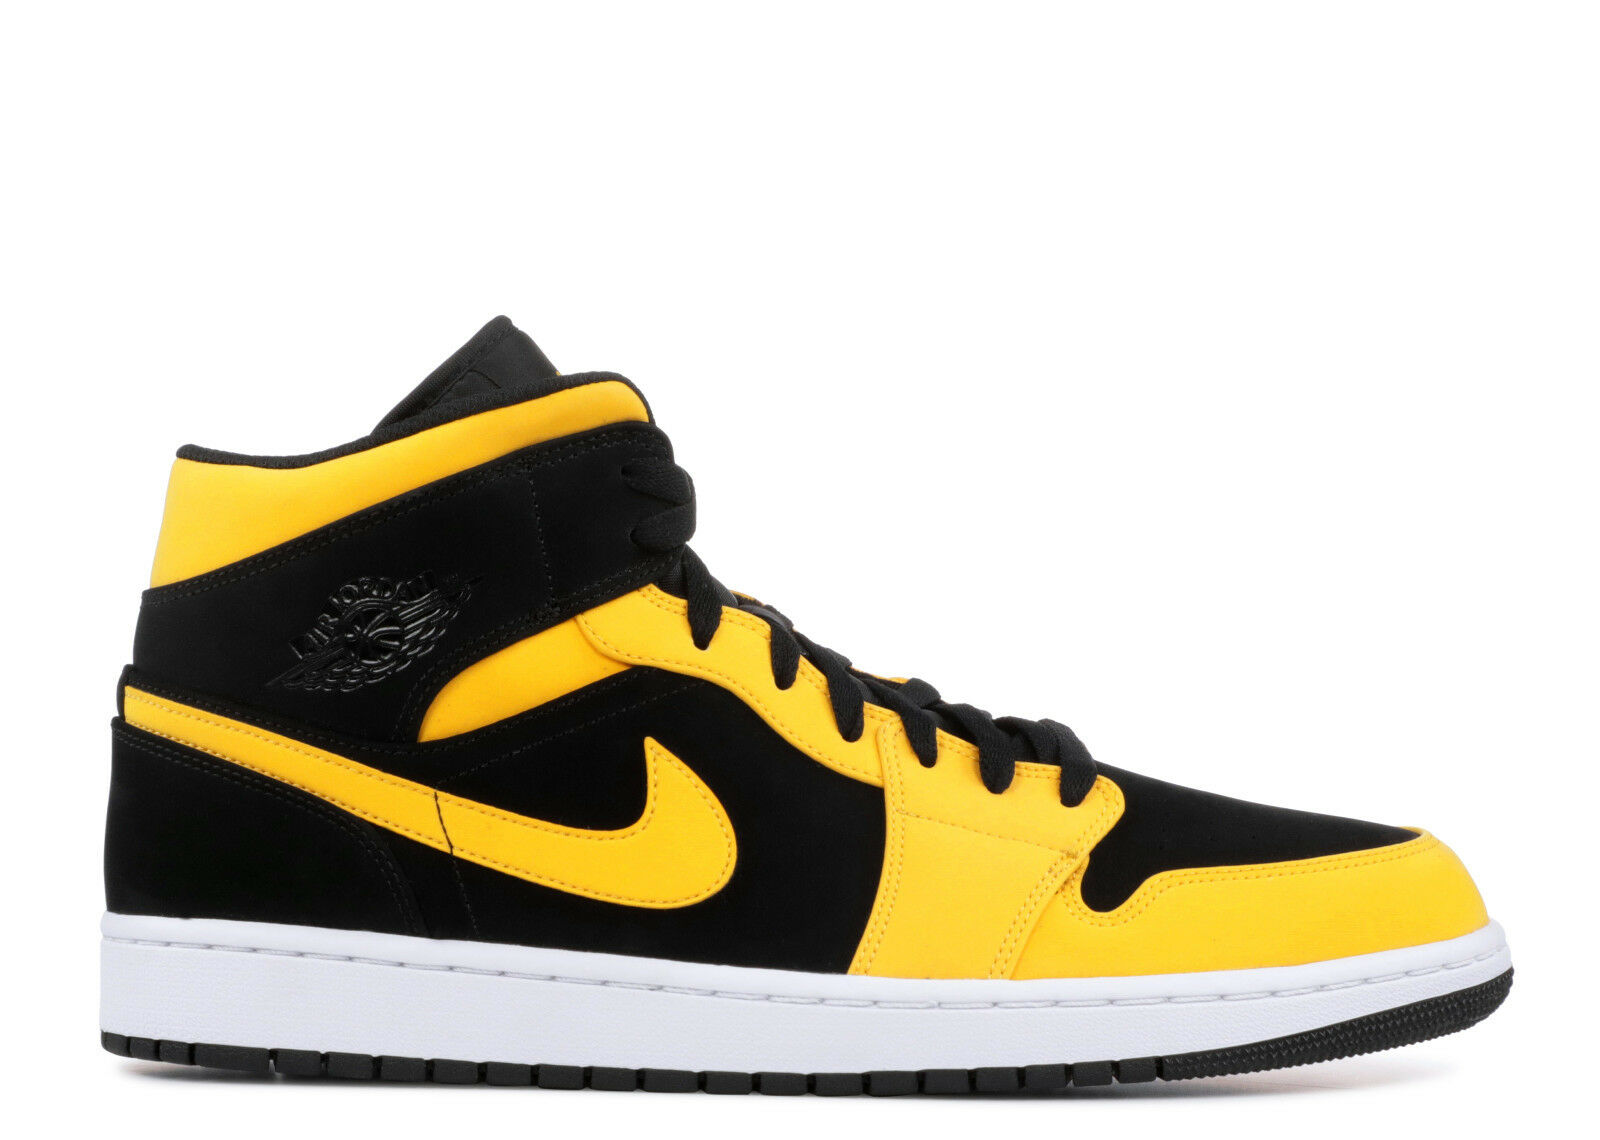 nike air jordan 1 mid black yellow strap